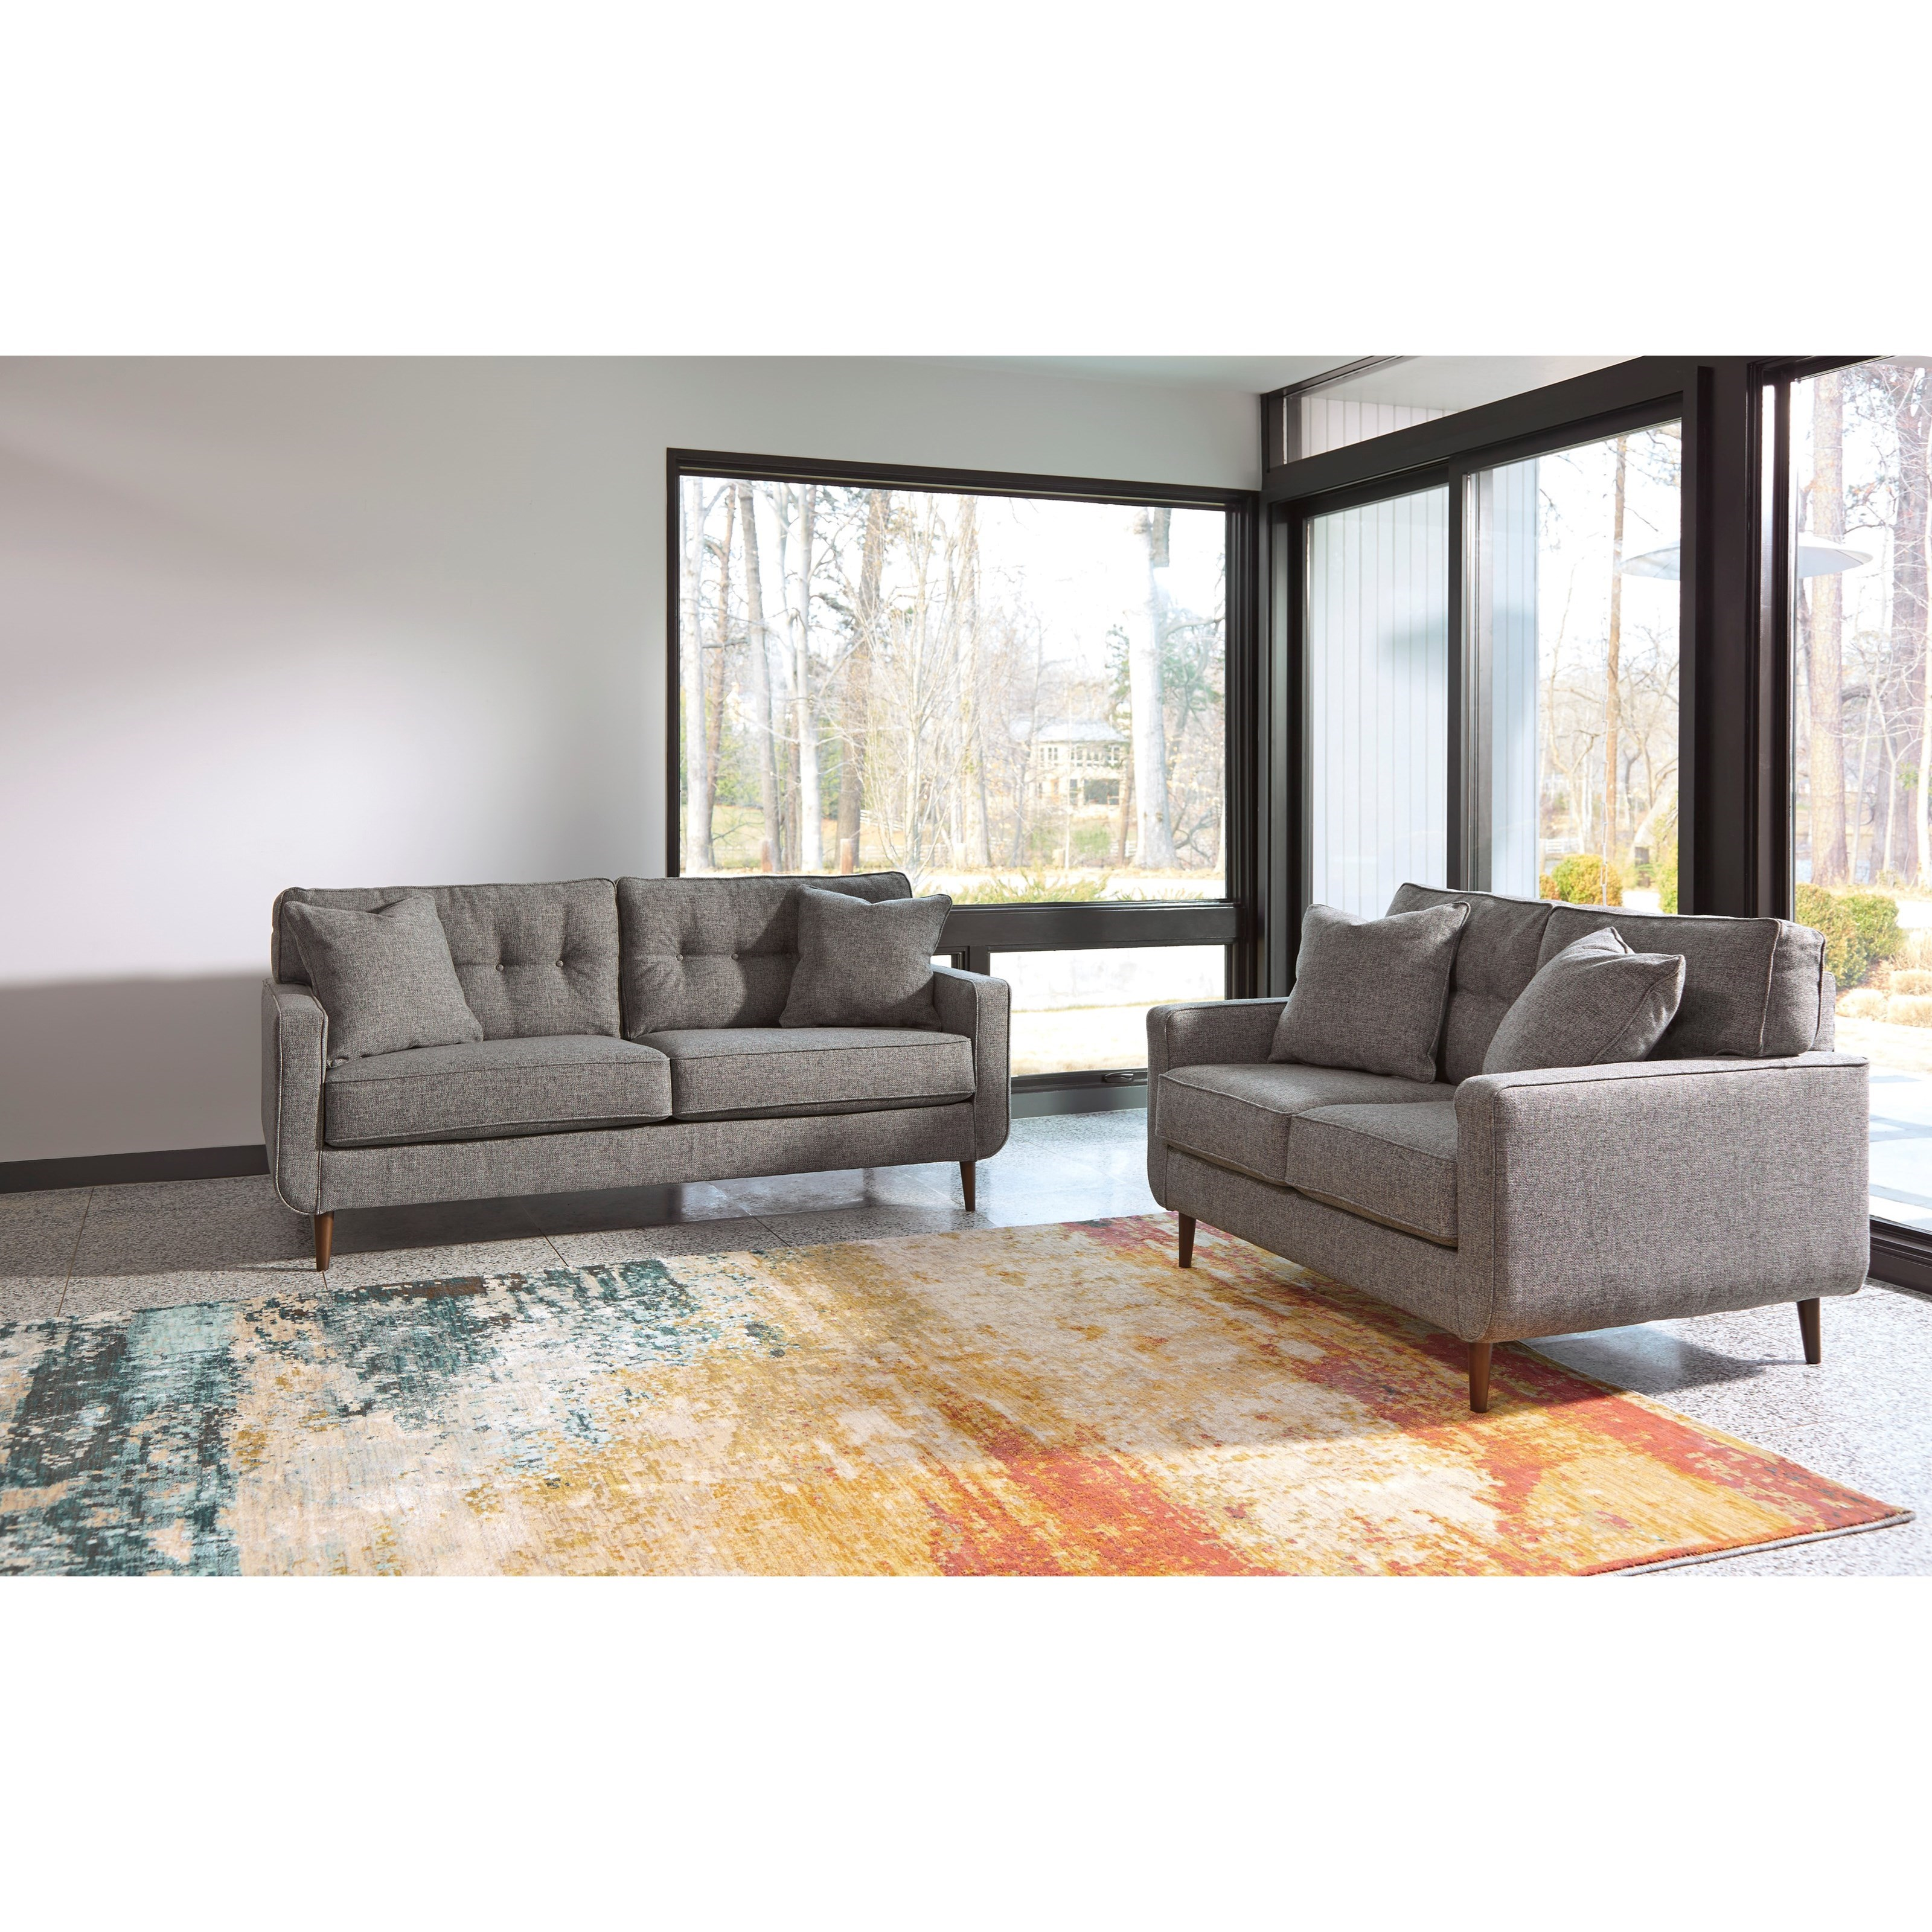 Ashley Furniture Zardoni Stationary Living Room Group Furniture Superstore Rochester Mn